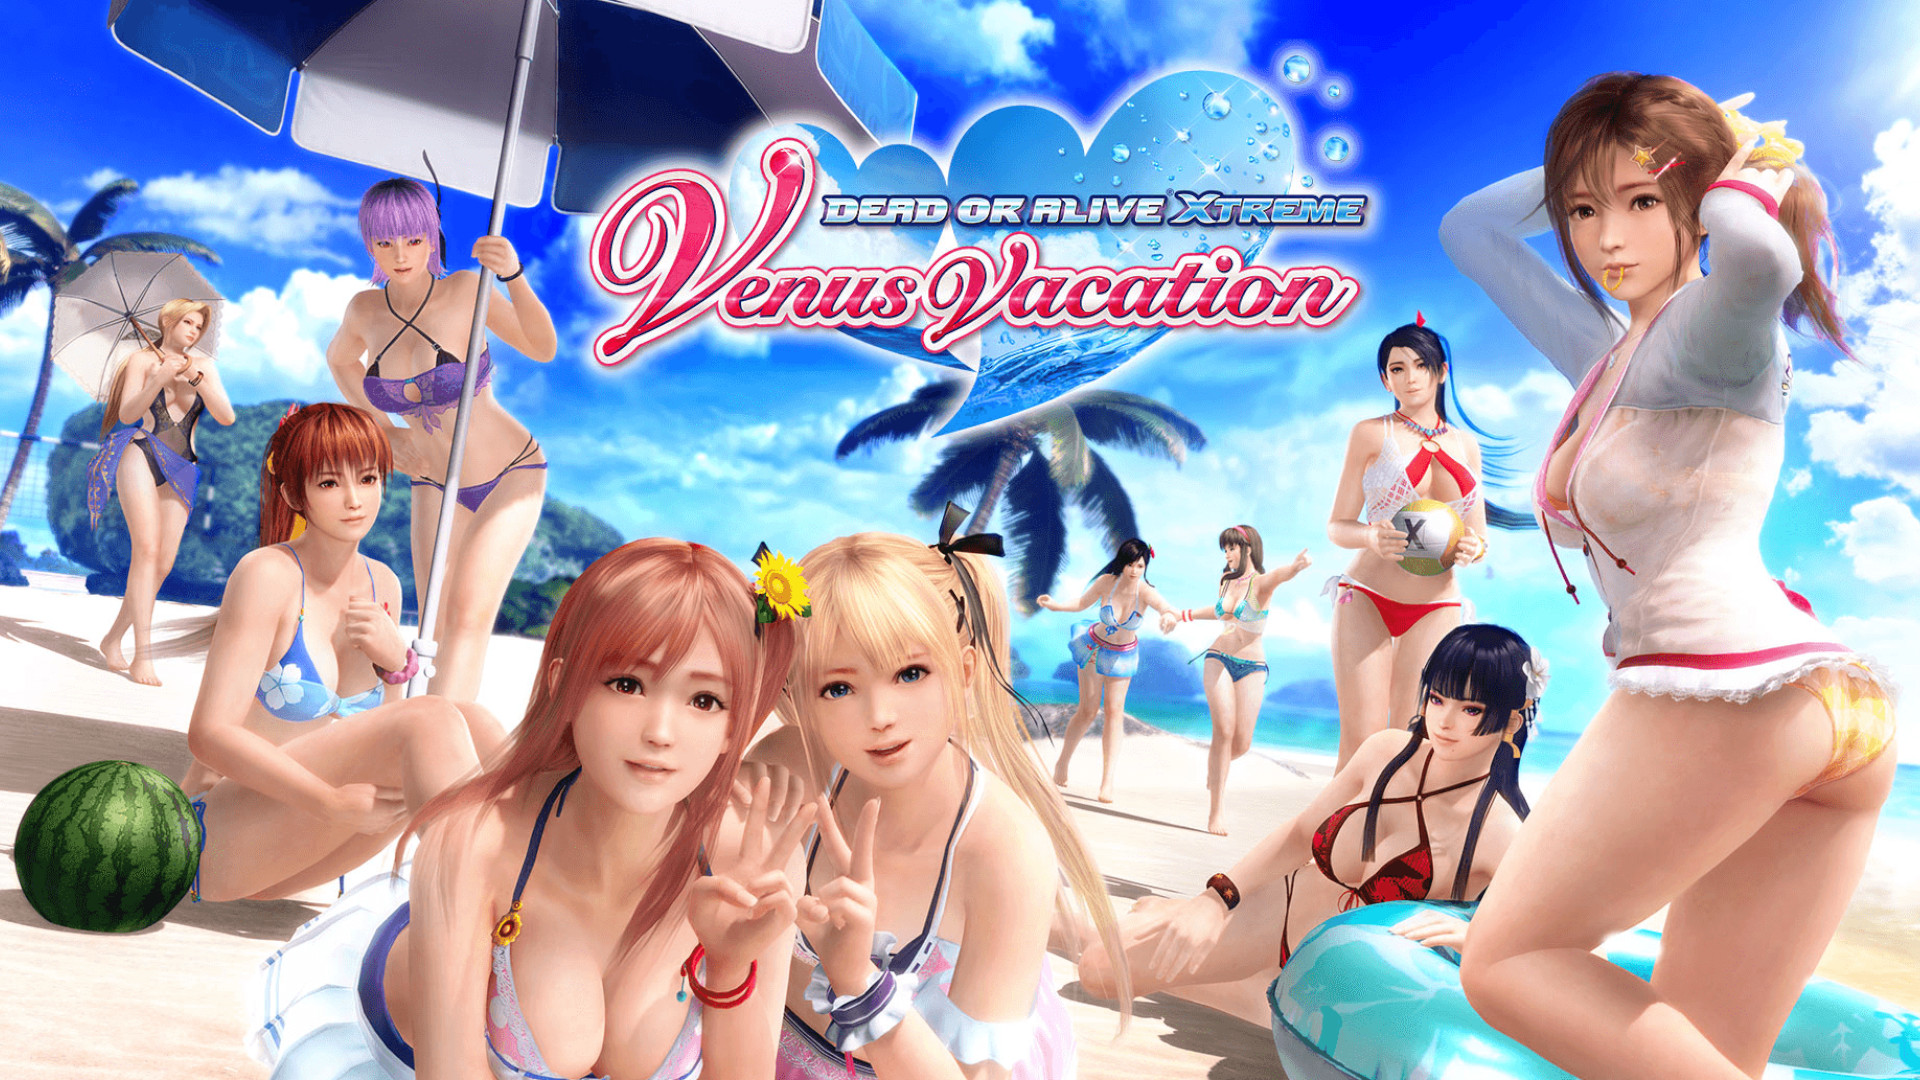 Dead or Alive Xtreme once again launches outside Japan thanks to a hentai platform